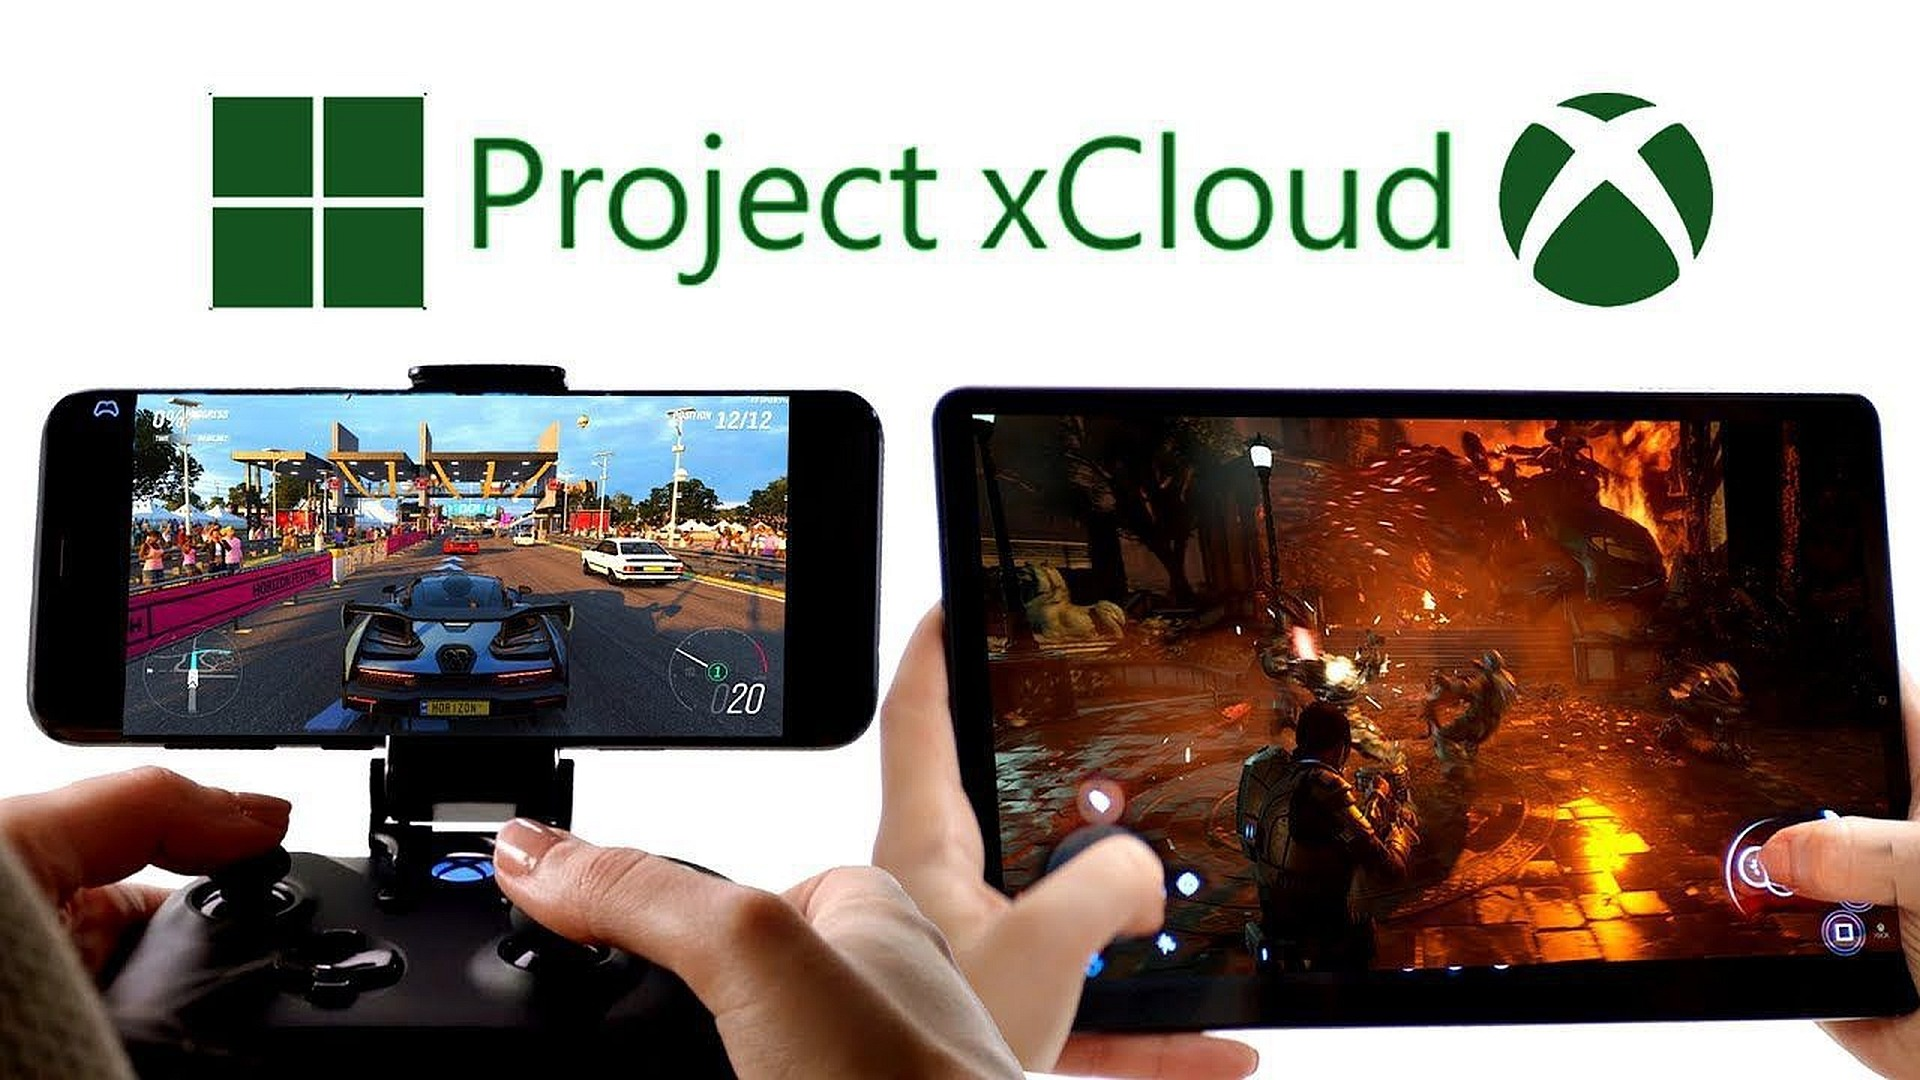 Project xCloud, Cloud Gaming